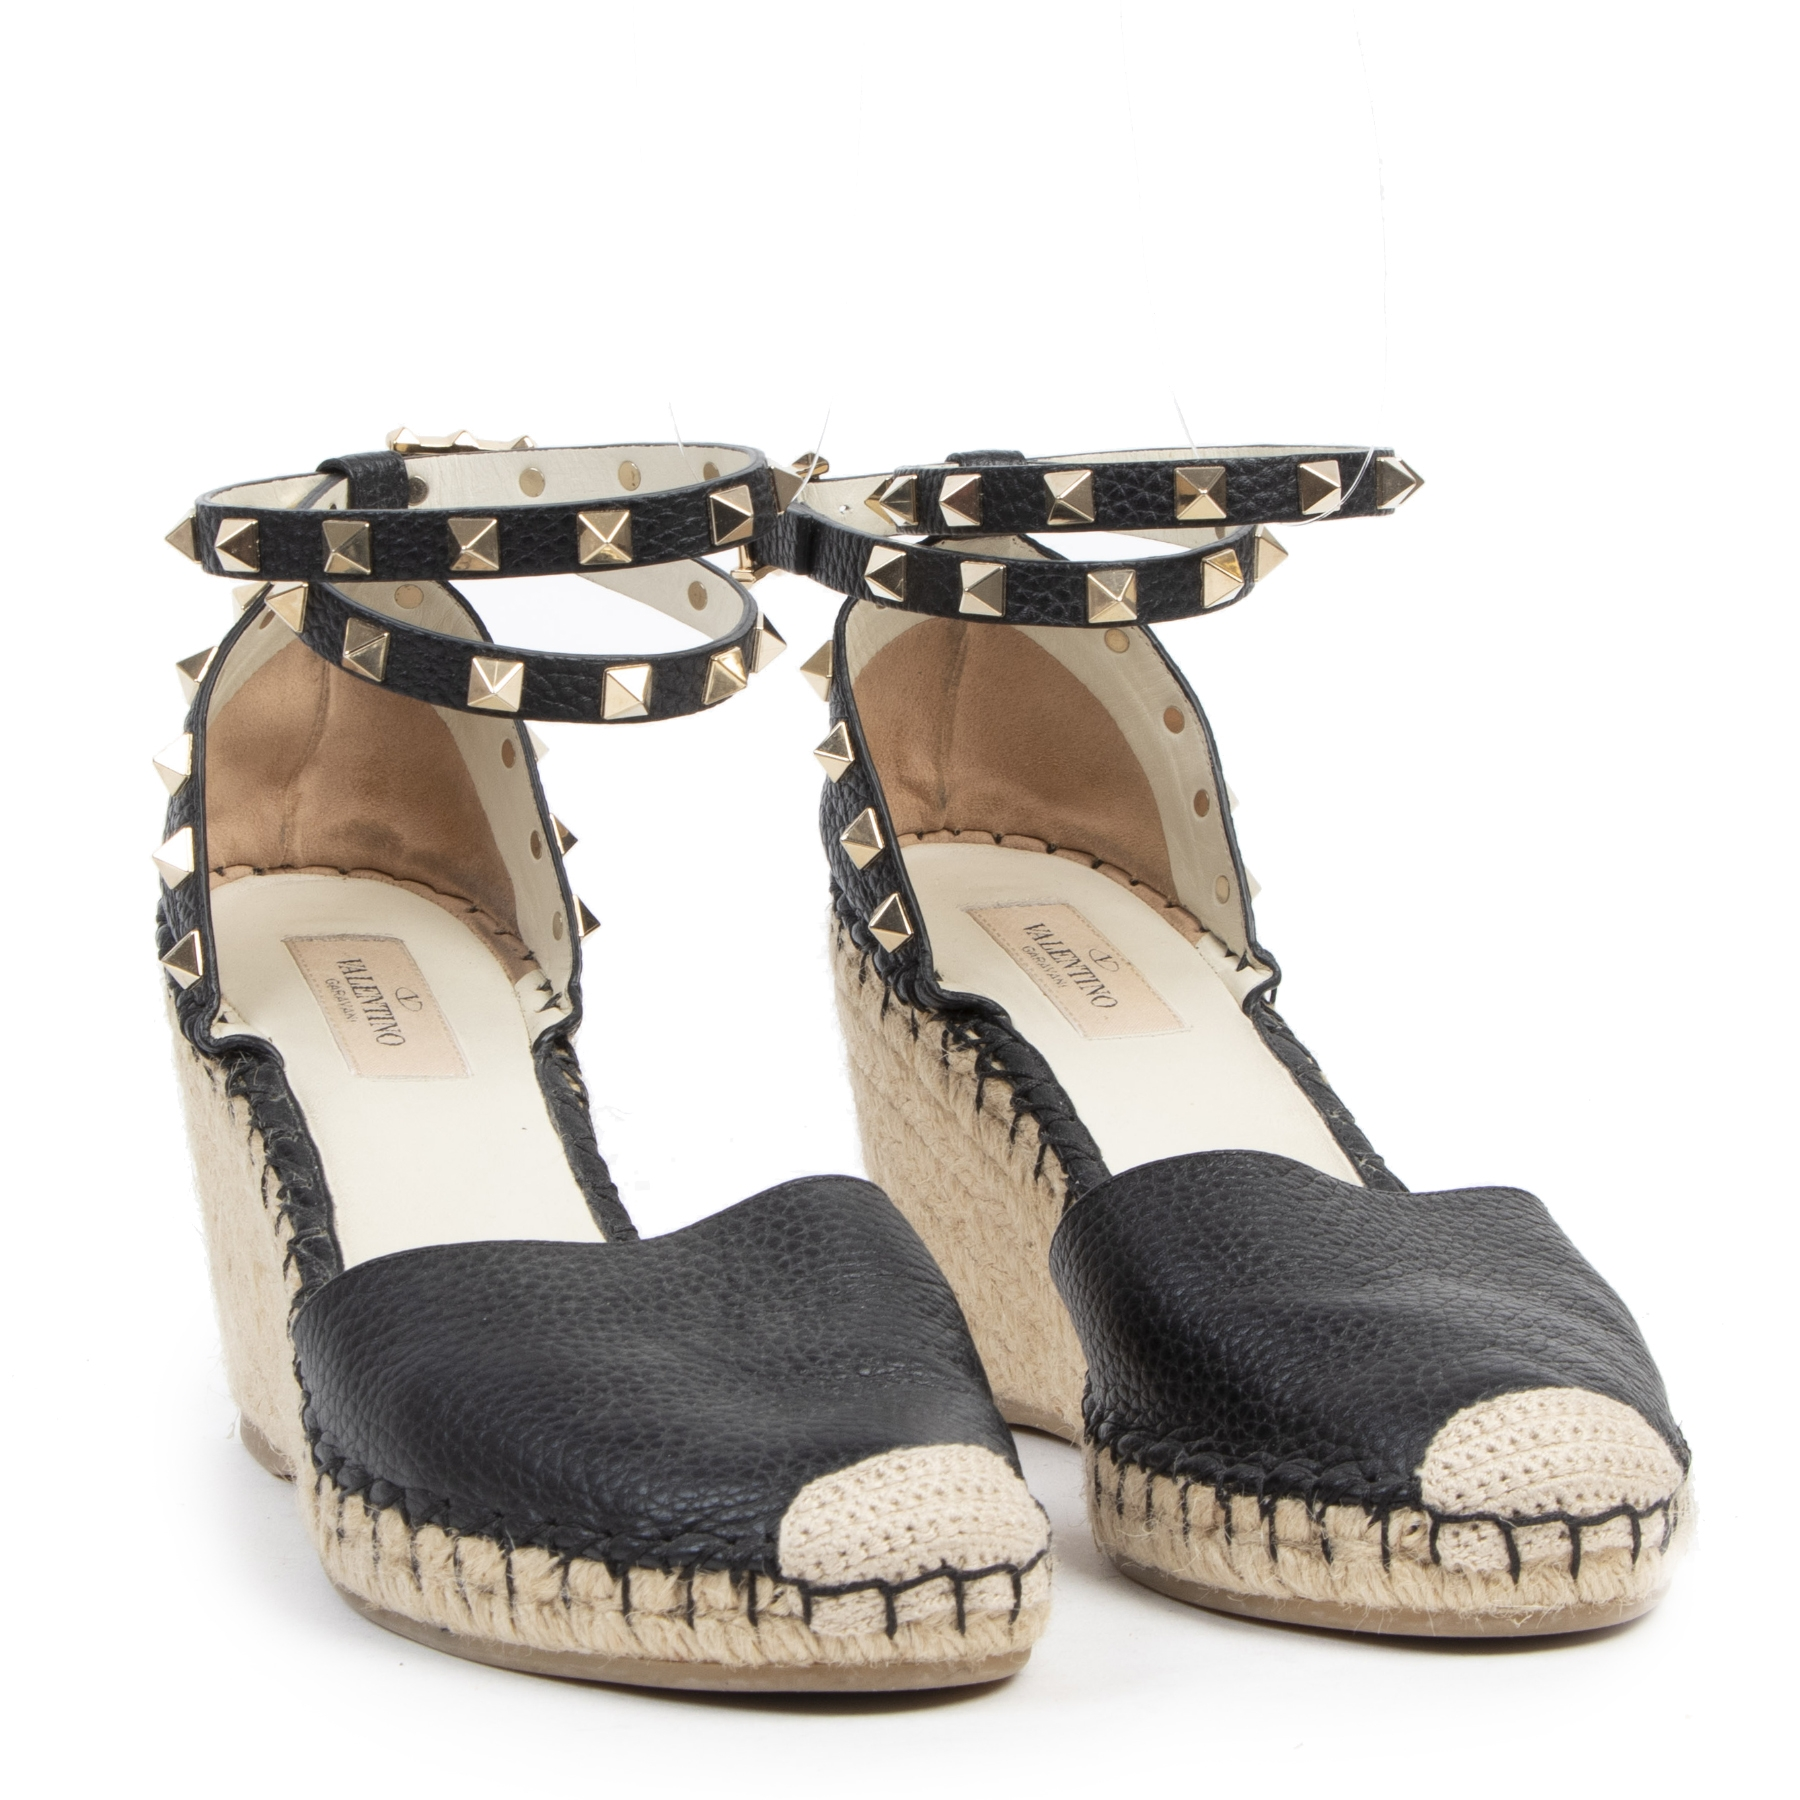 Authentic secondhand Valentino Rockstud Double Grainy Calfskin Leather Wedge Espadrille - Size 39 designer shoes luxury vintage webshop fashion designer high end brands safe secure online shopping